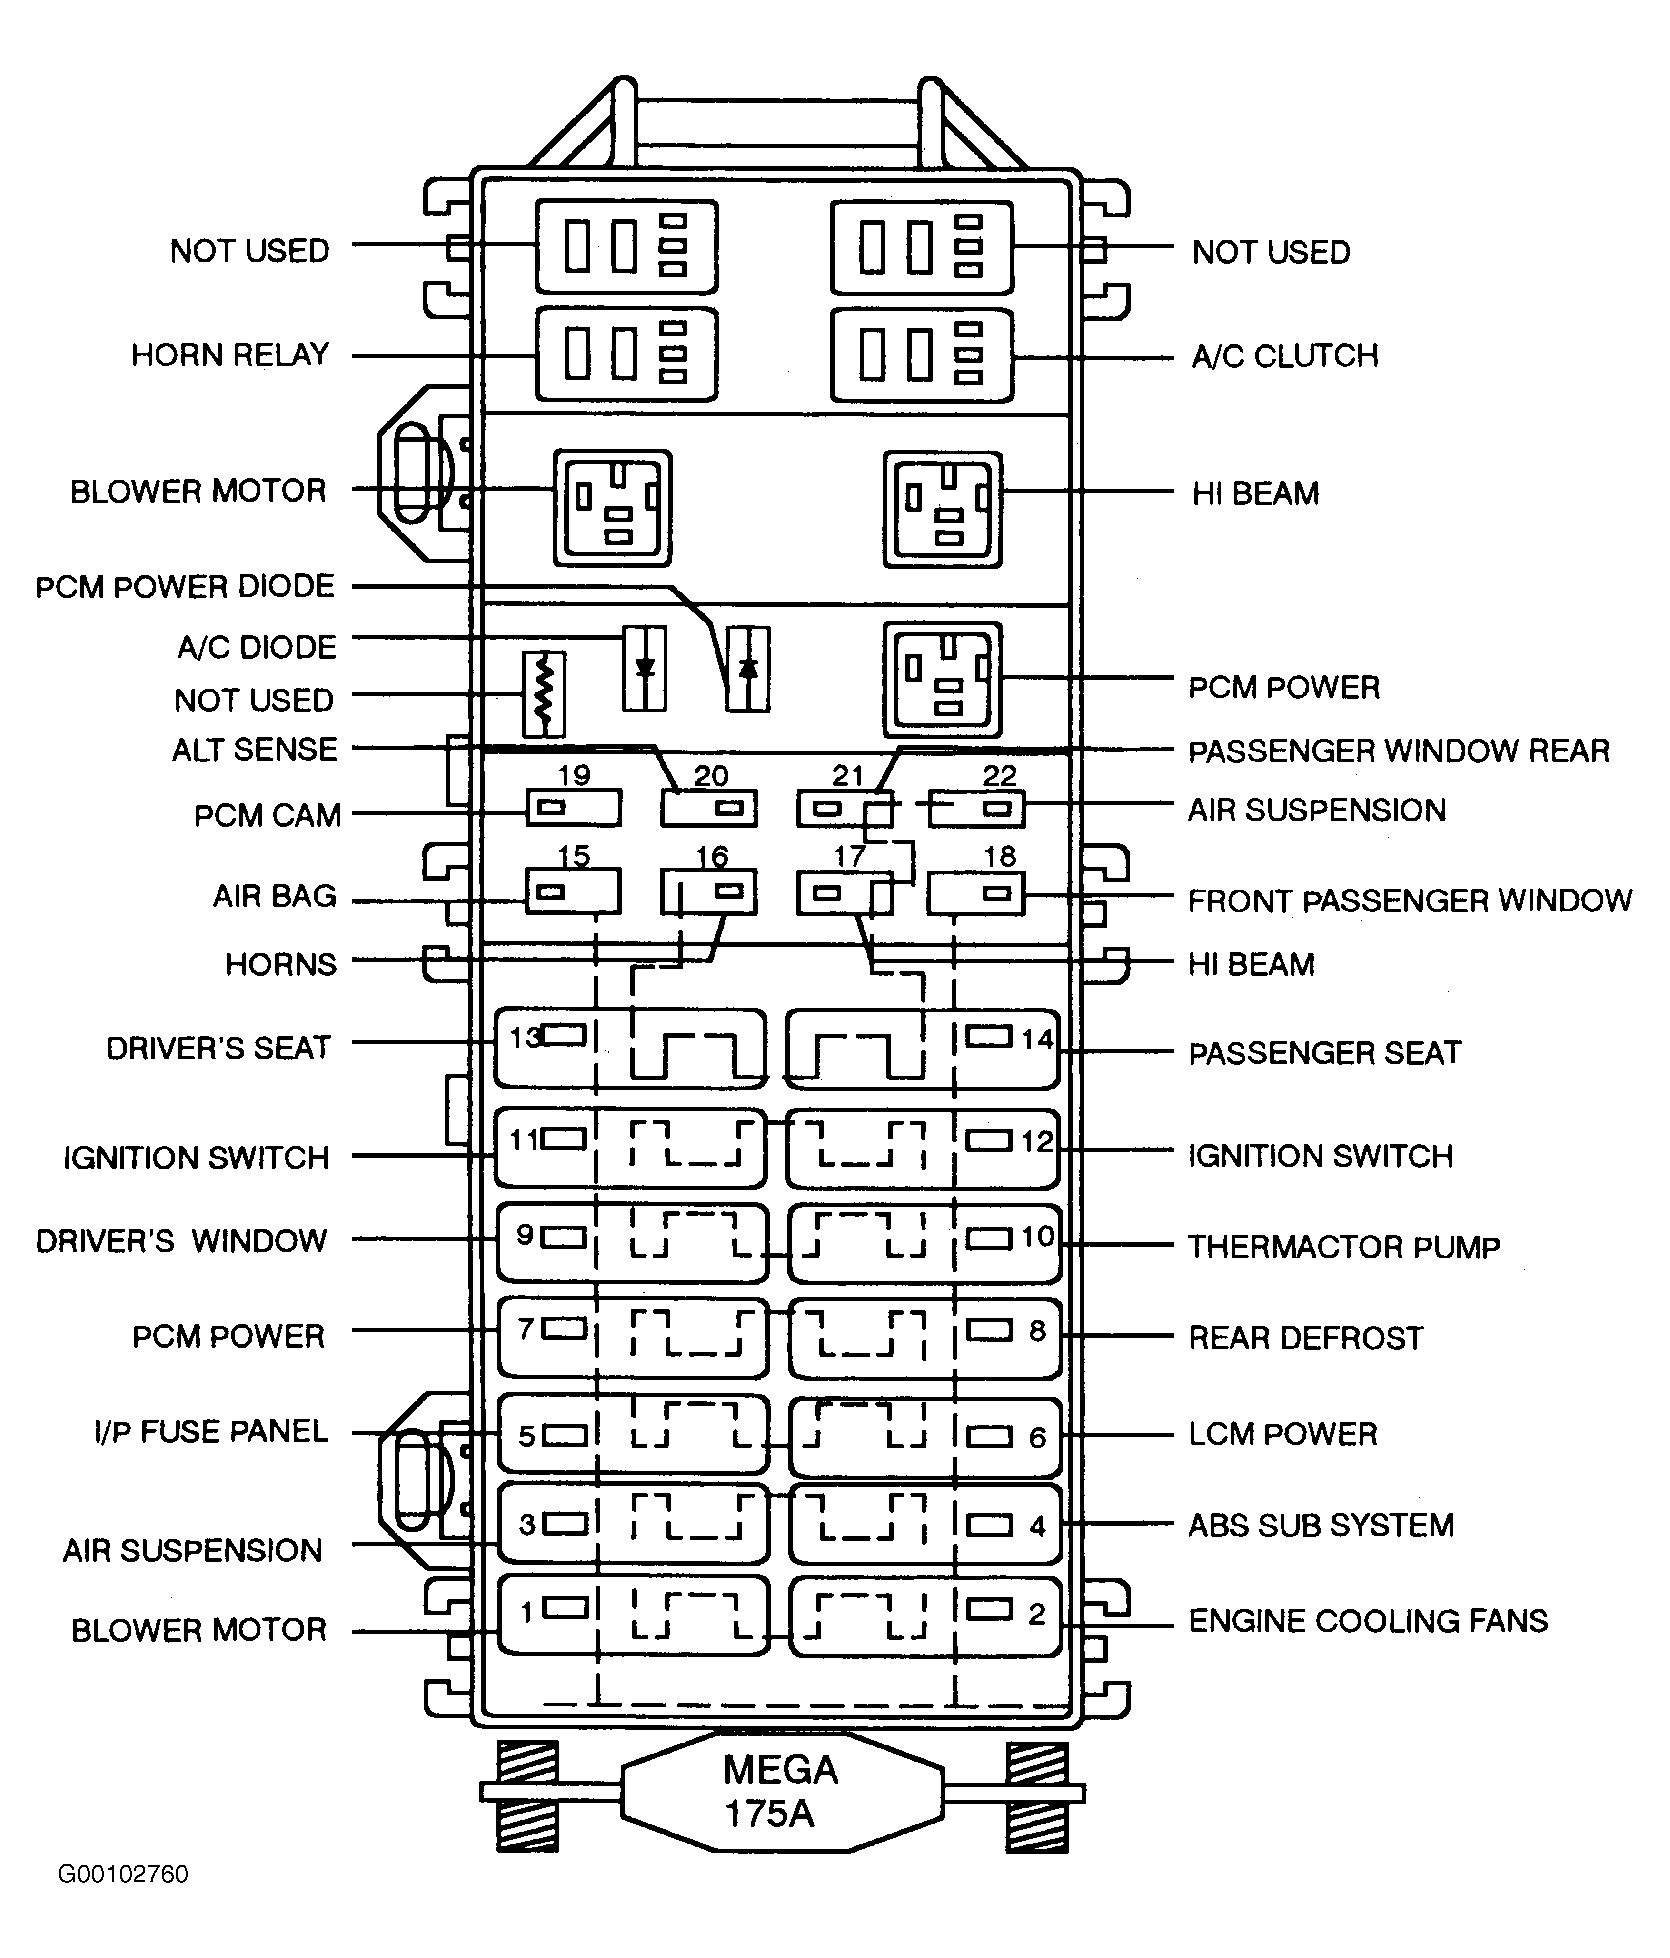 small resolution of 2006 lincoln zephyr fuse box diagram wiring library2006 lincoln zephyr fuse box diagram